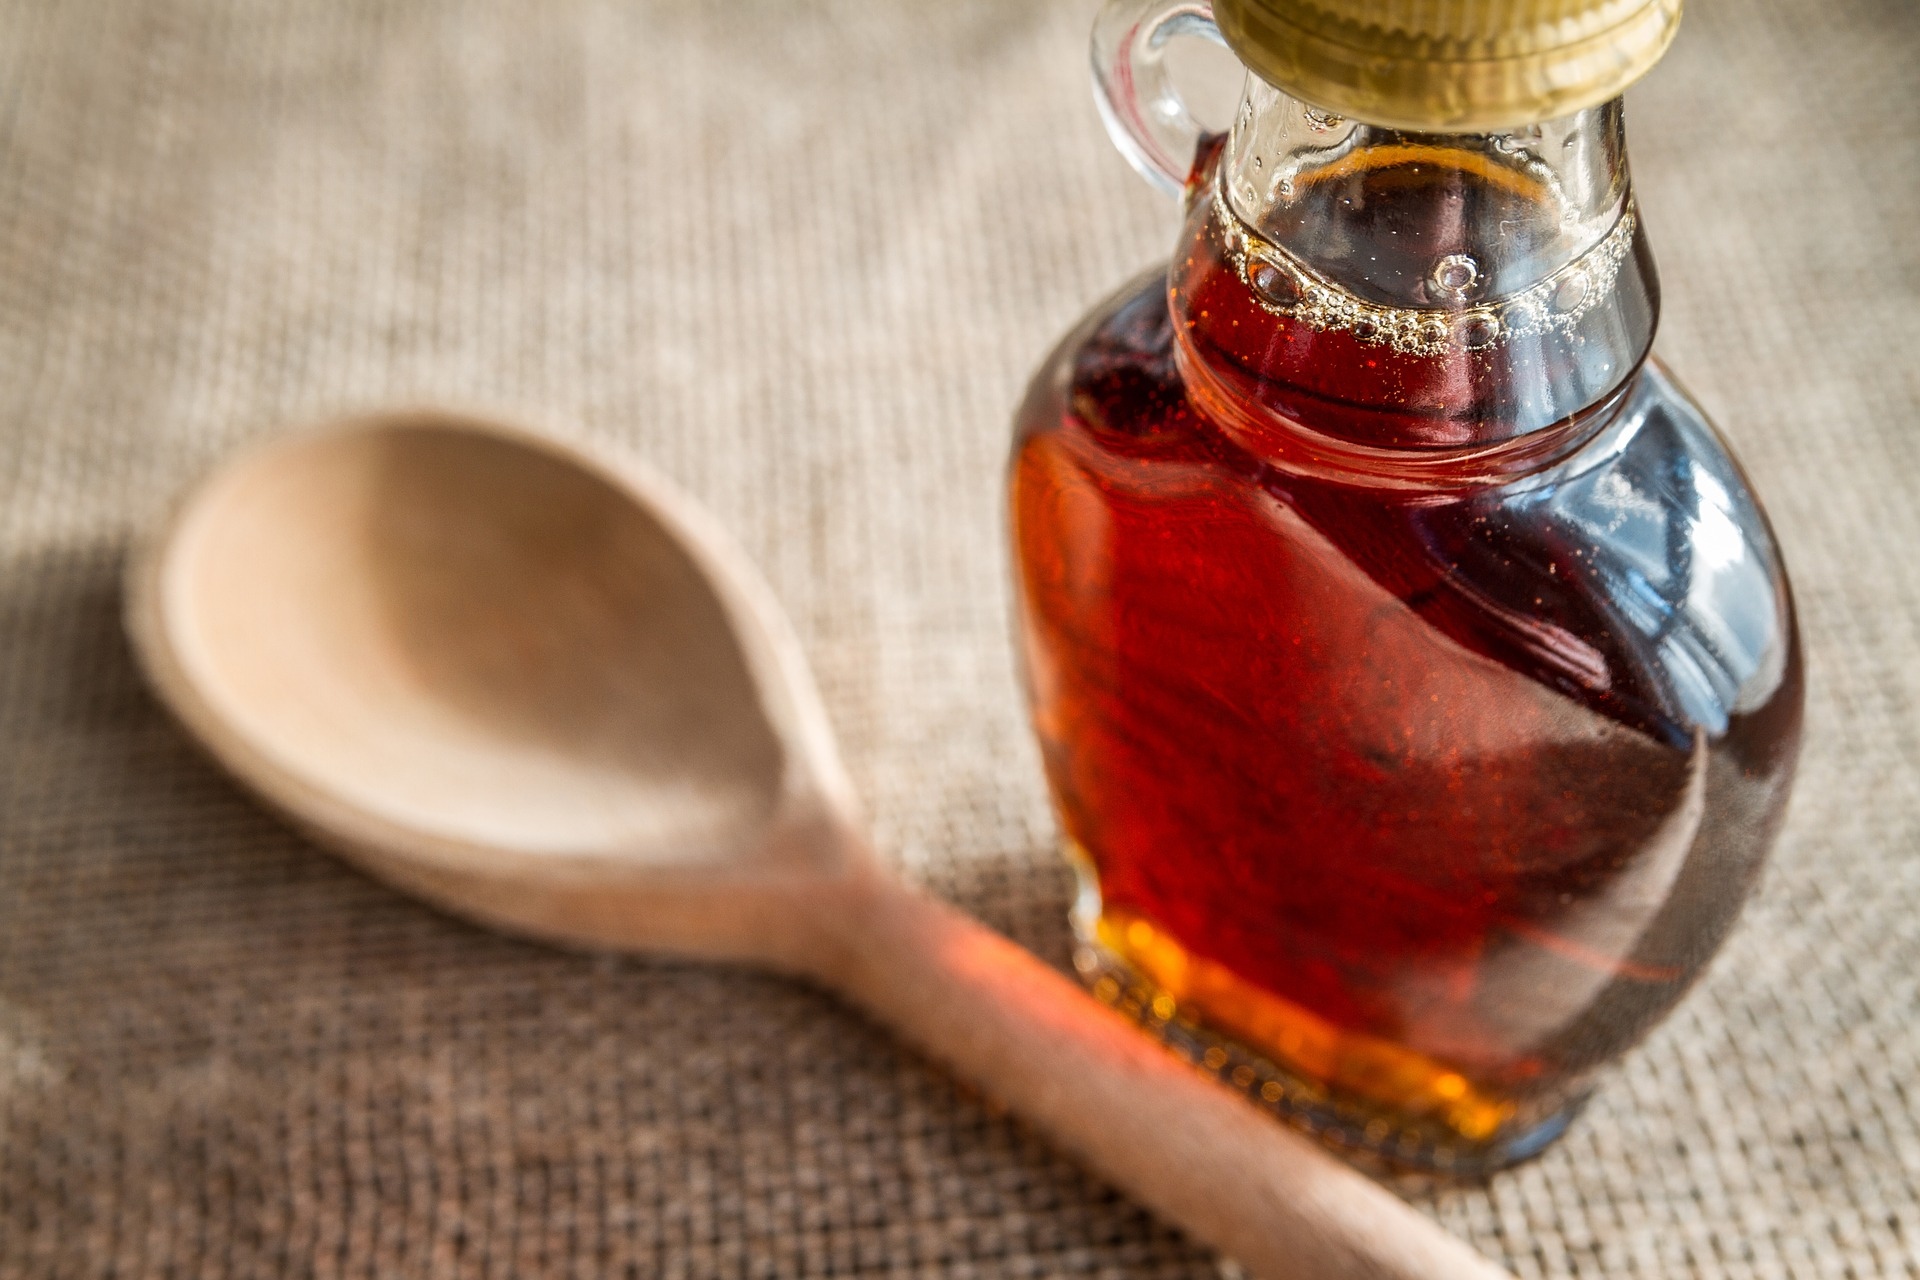 Royalty-Free image from Pixabay https://pixabay.com/en/maple-syrup-food-delicious-tasty-2232088/